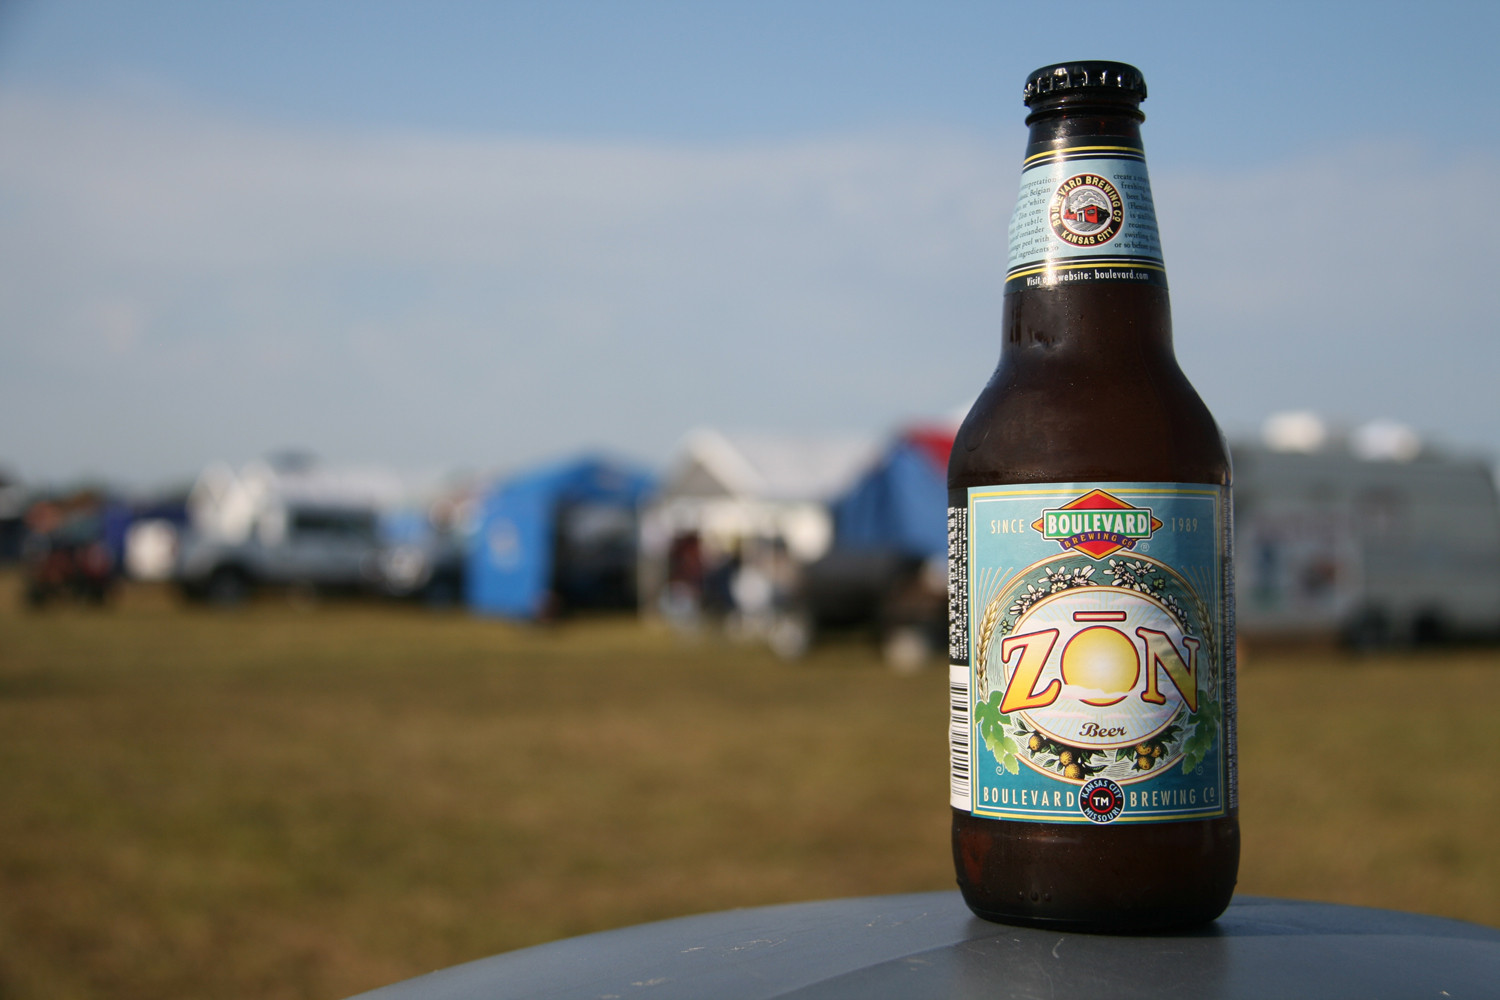 Drink Boulevard Zon witbier summertime beer for your next bbq.